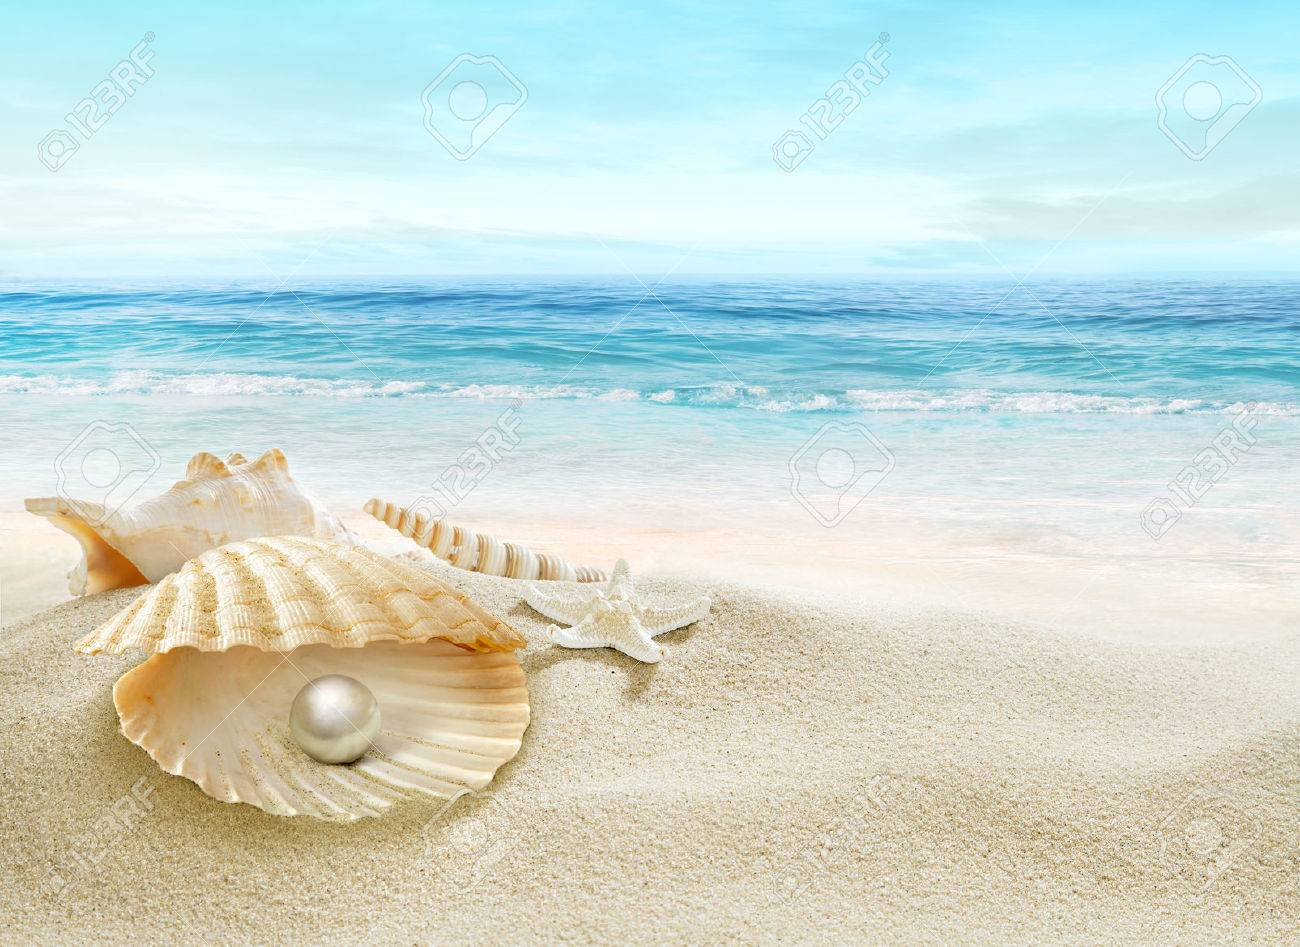 The shell with a pearl. - 54767513